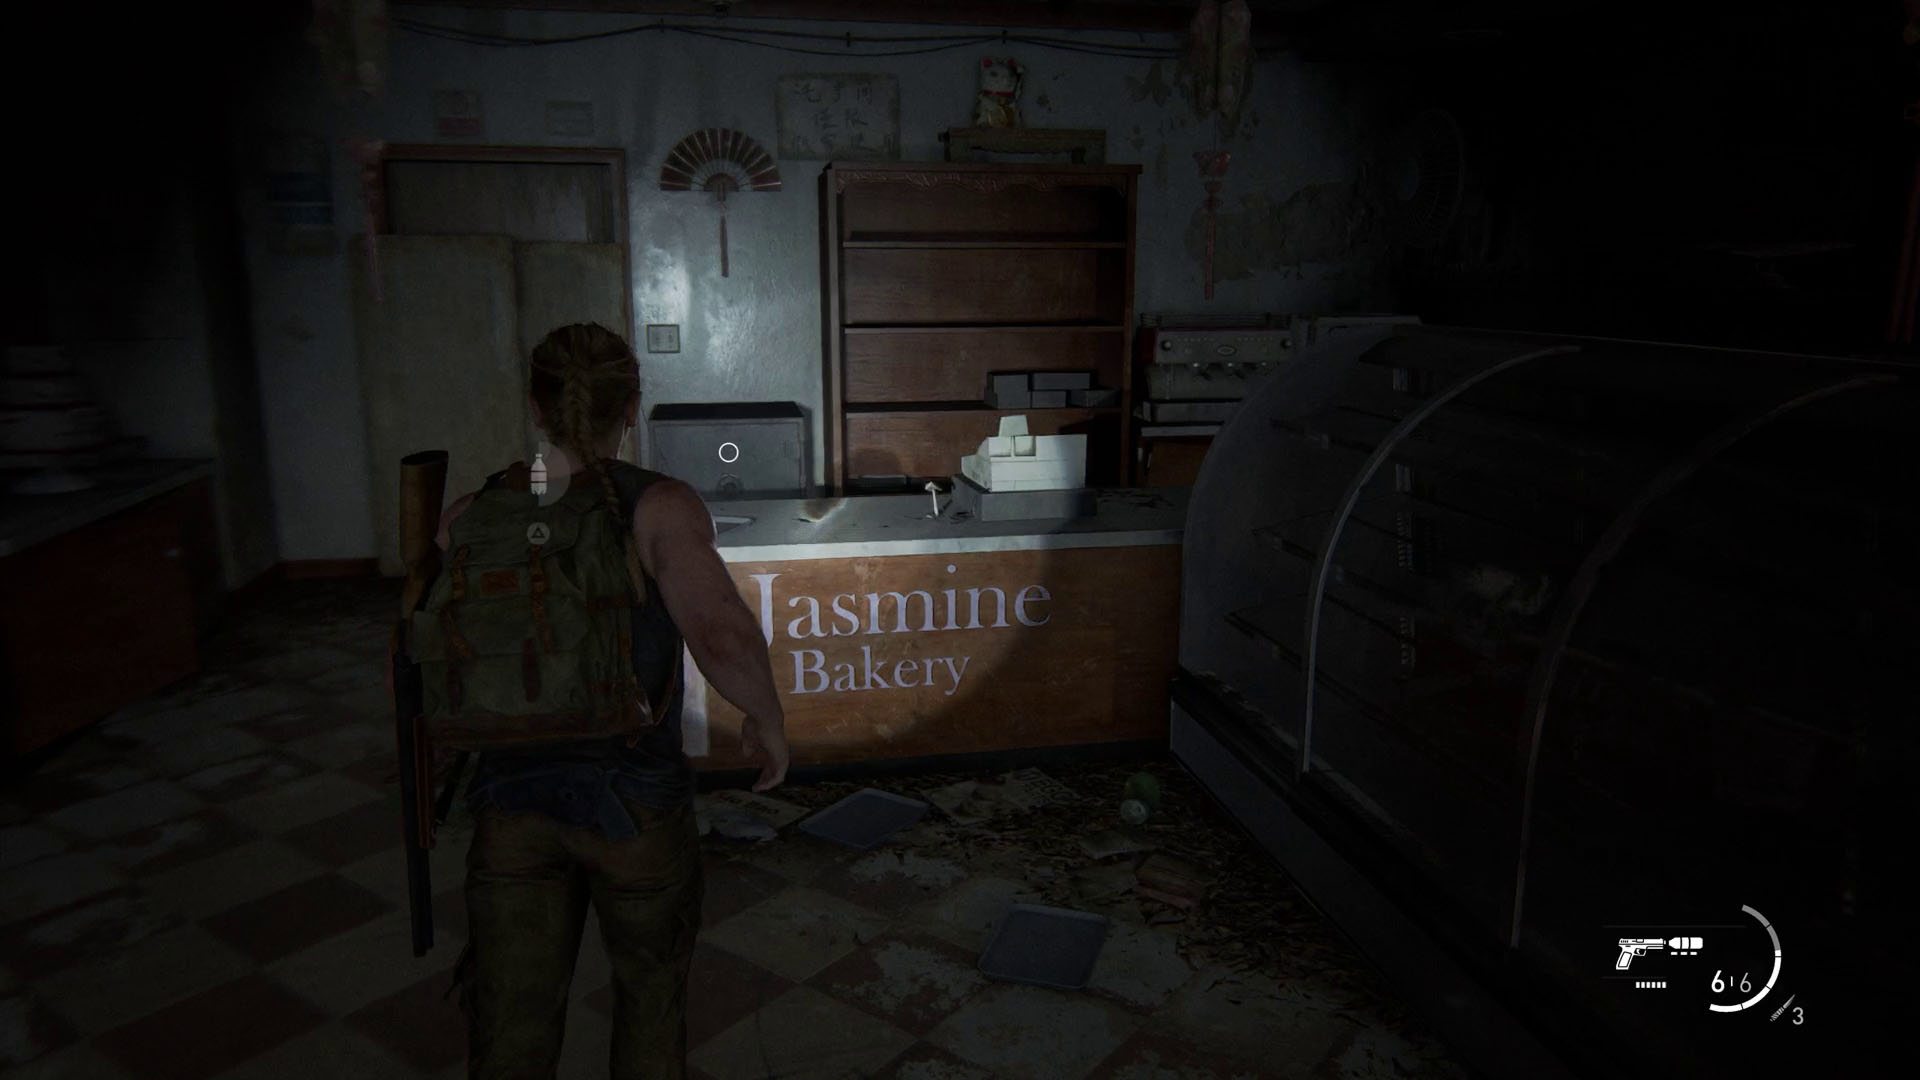 The Last of Us 2 safe codes - jasmine bakery safe